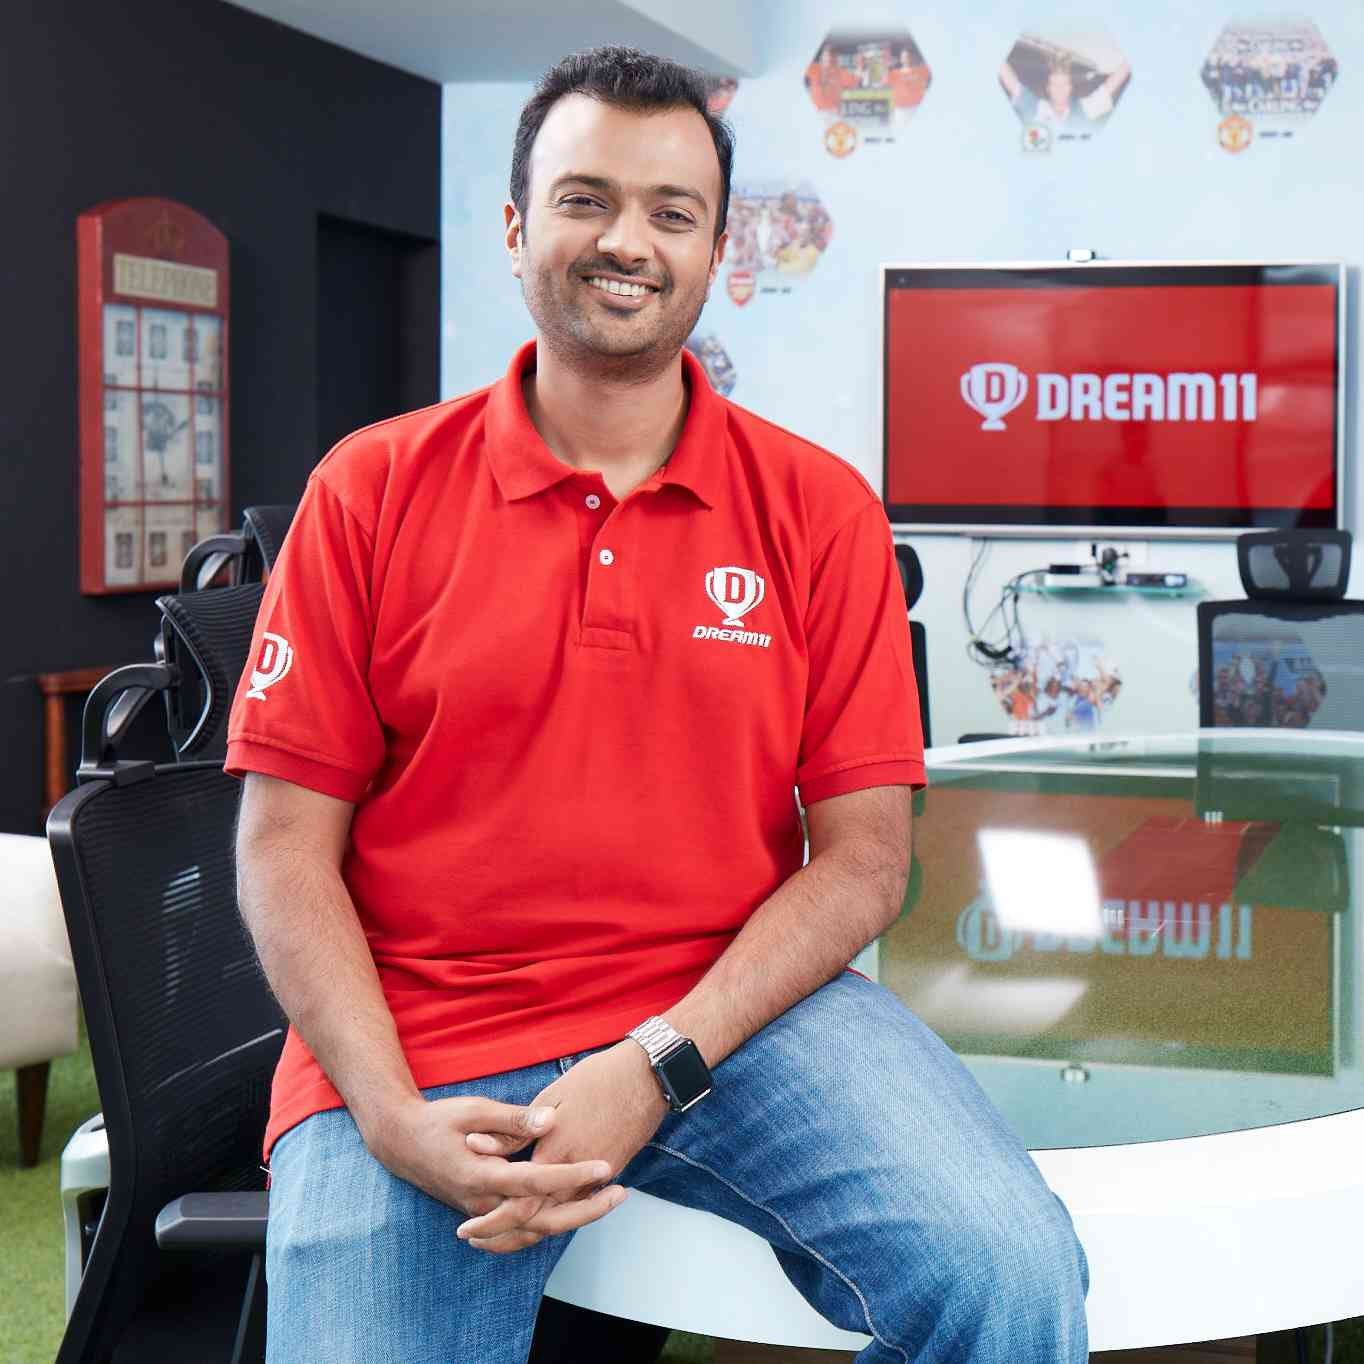 Harsh Jain, co-founder and CEO of Dream11